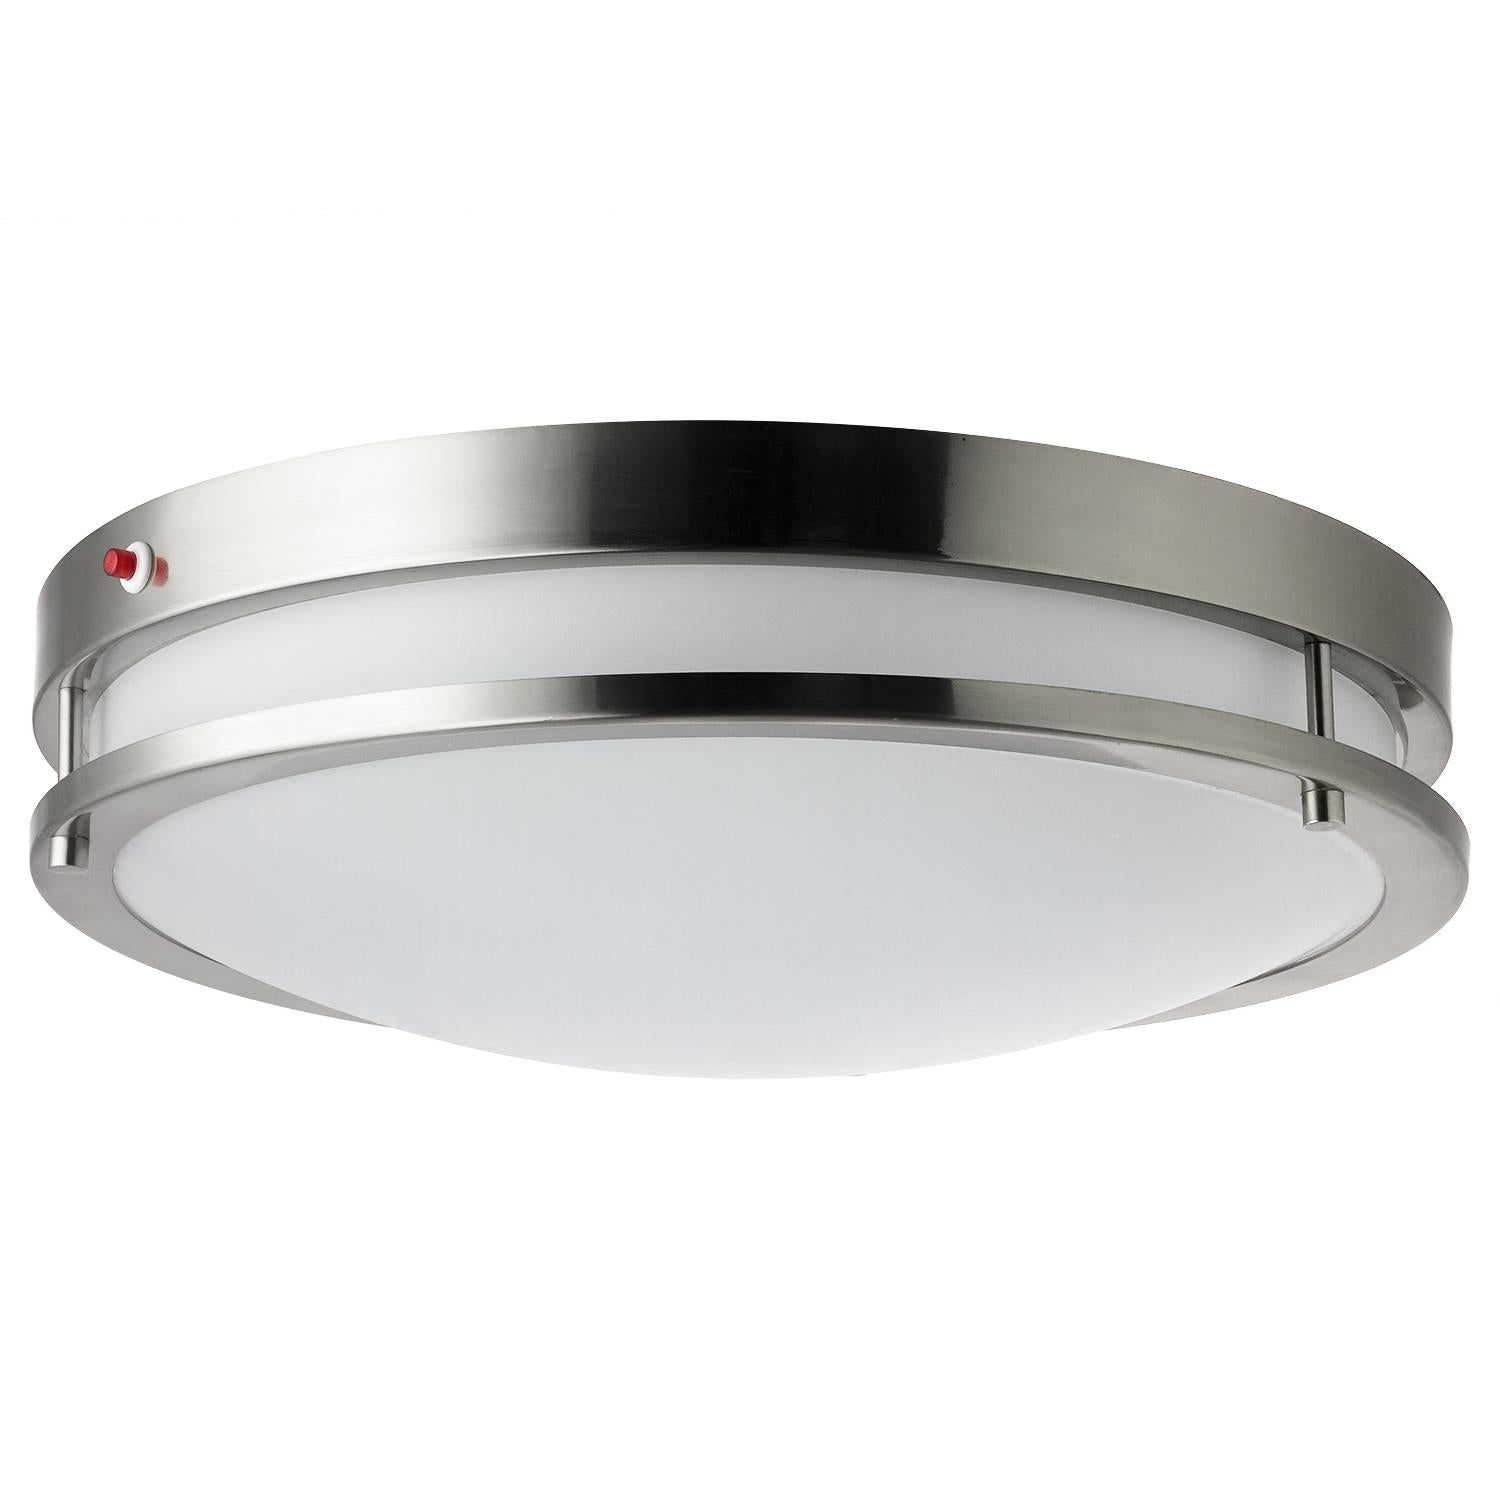 SUNLITE 45603-SU 14-Inch 20w LED 4000K Ceiling Light Fixture in Brushed Nickel